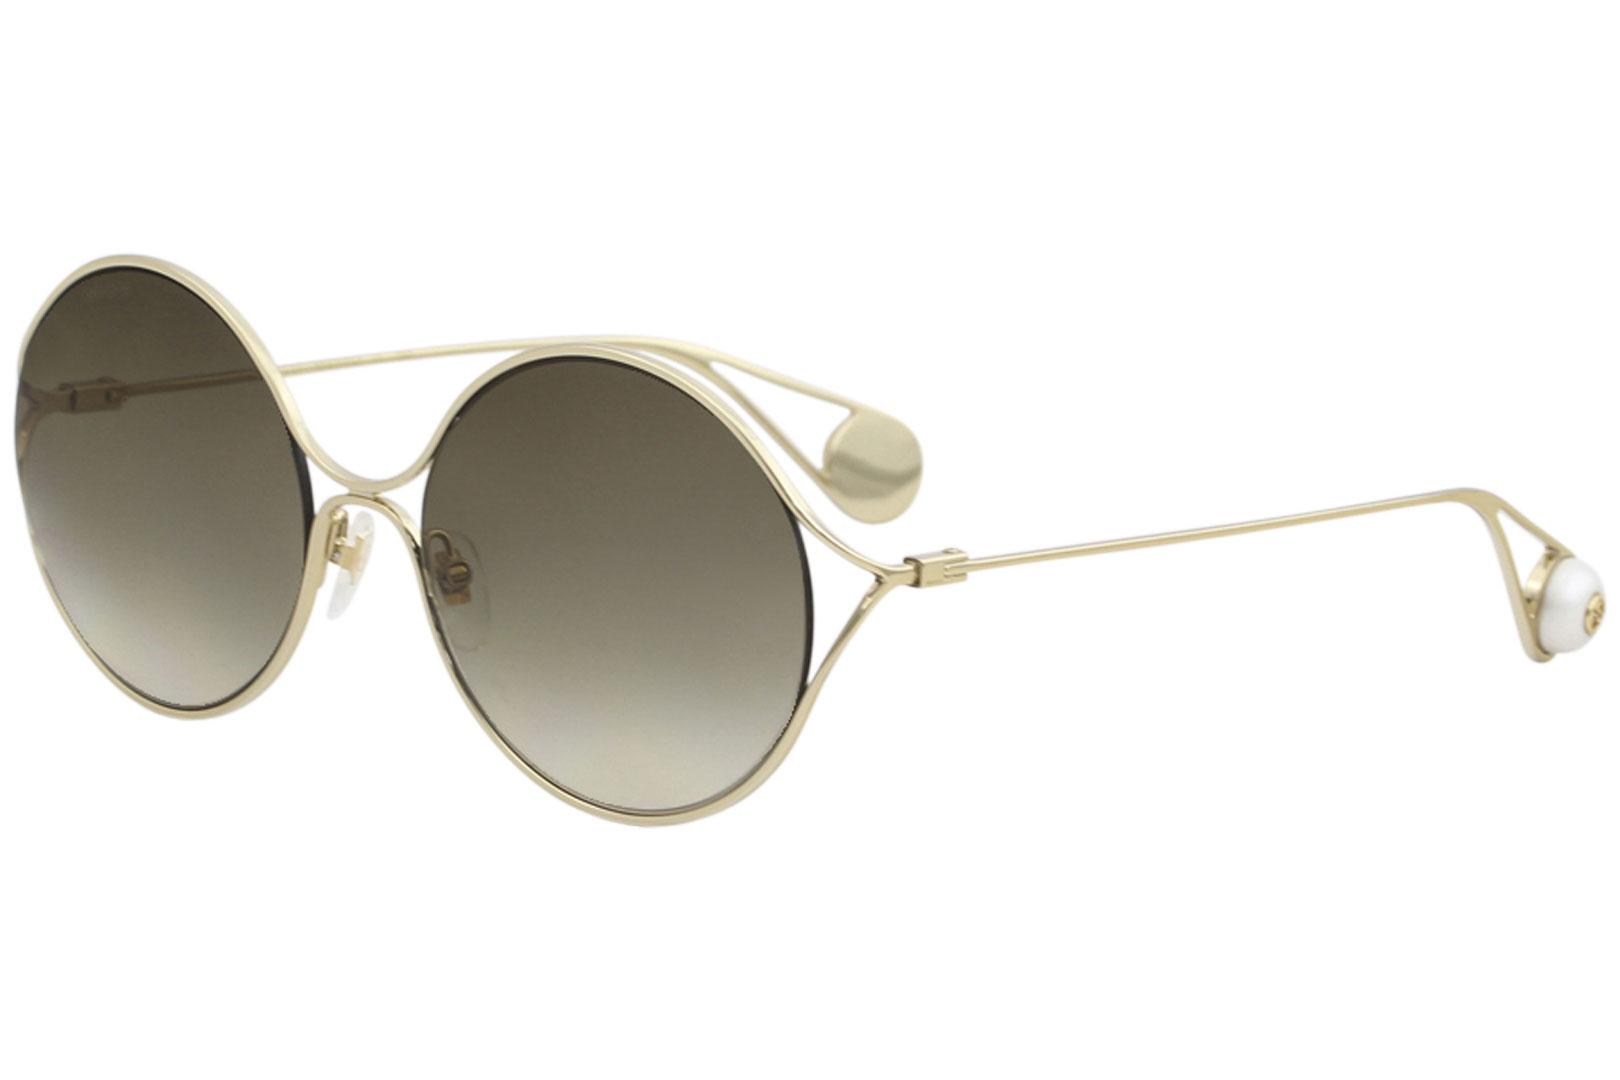 7160decdf8 Gucci Women s GG0253S GG 0253 S 002 Gold Fashion Round Sunglasses ...